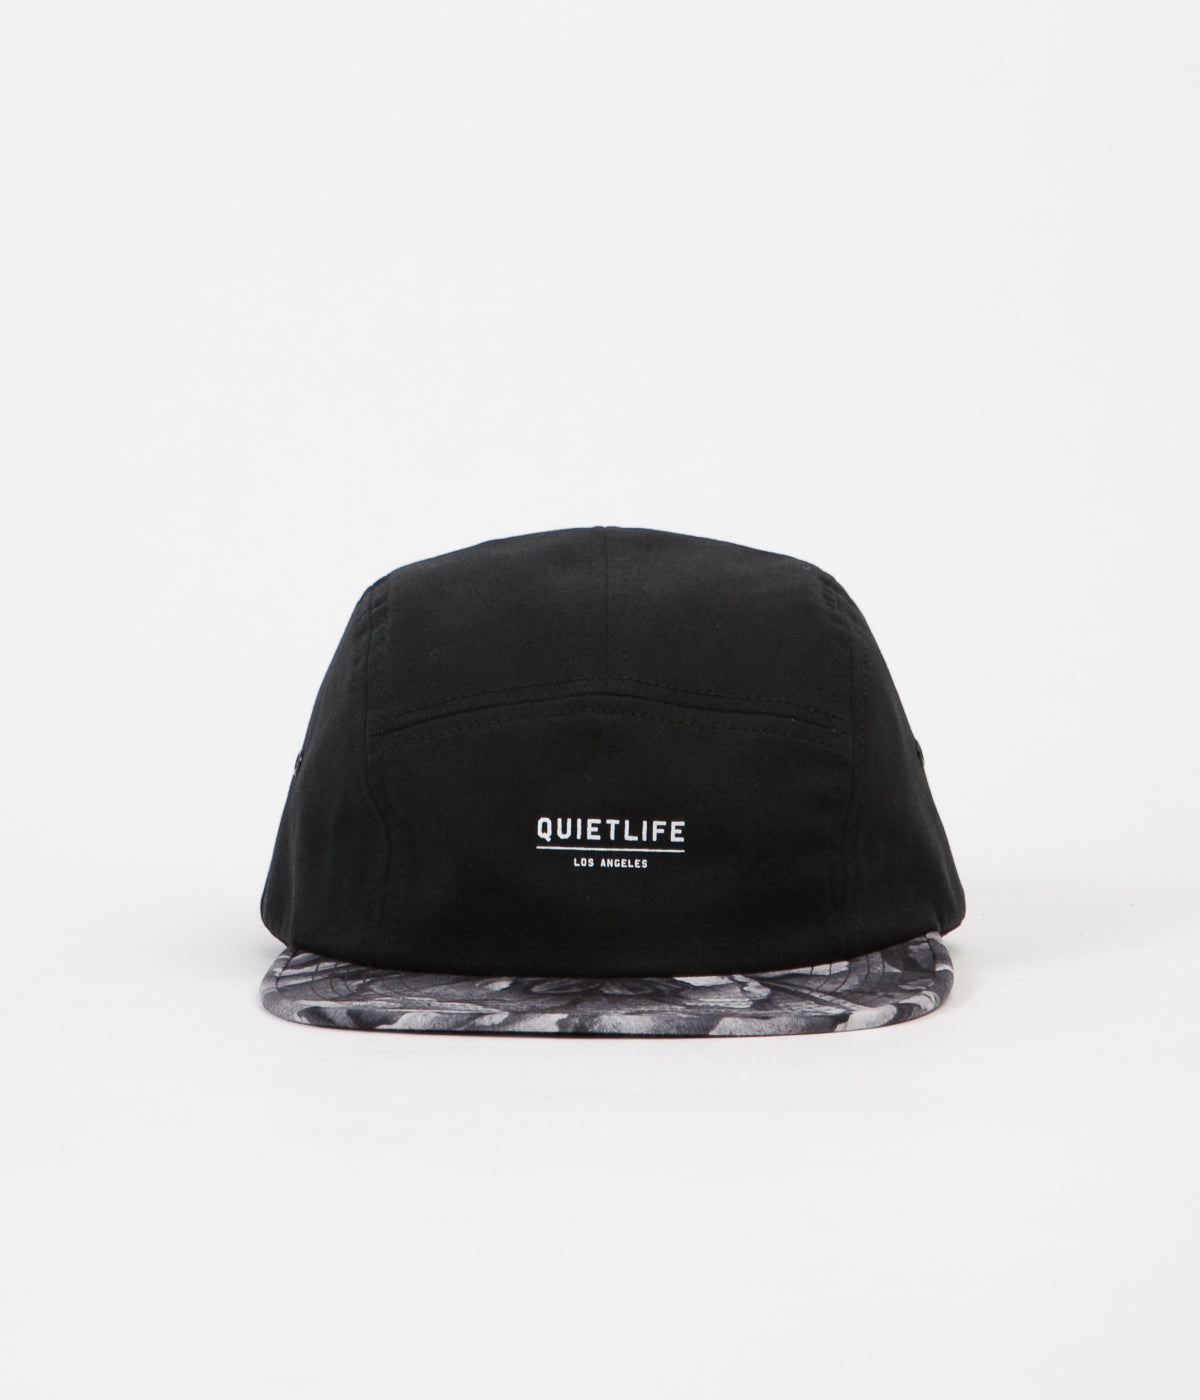 The Quiet Life Rose 5 Panel Camper Cap - Black / Rose